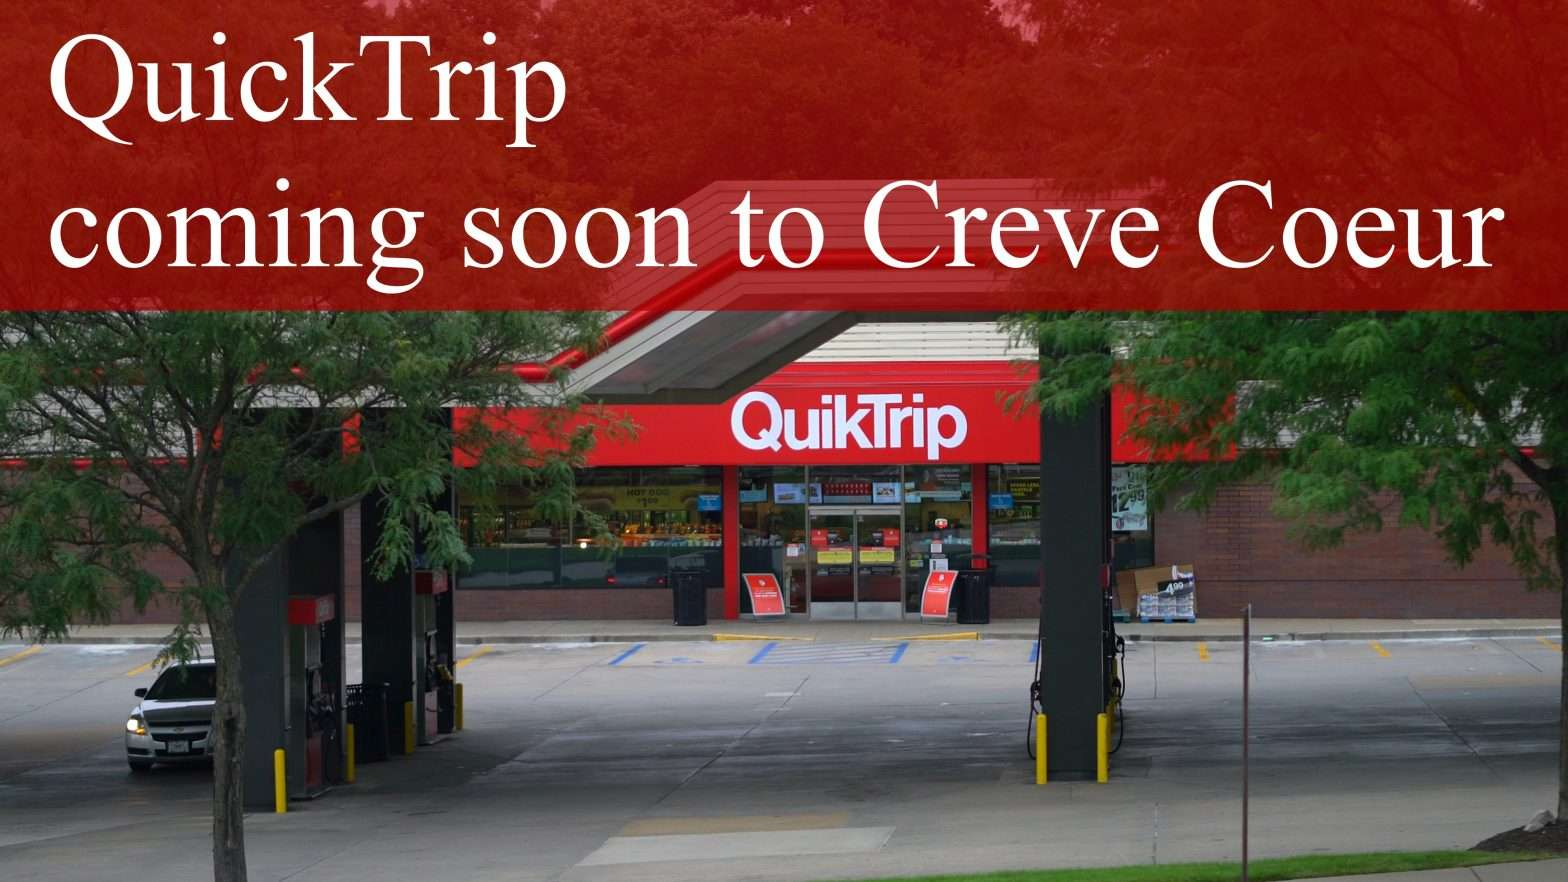 QT coming to Creve Coeur, MO.